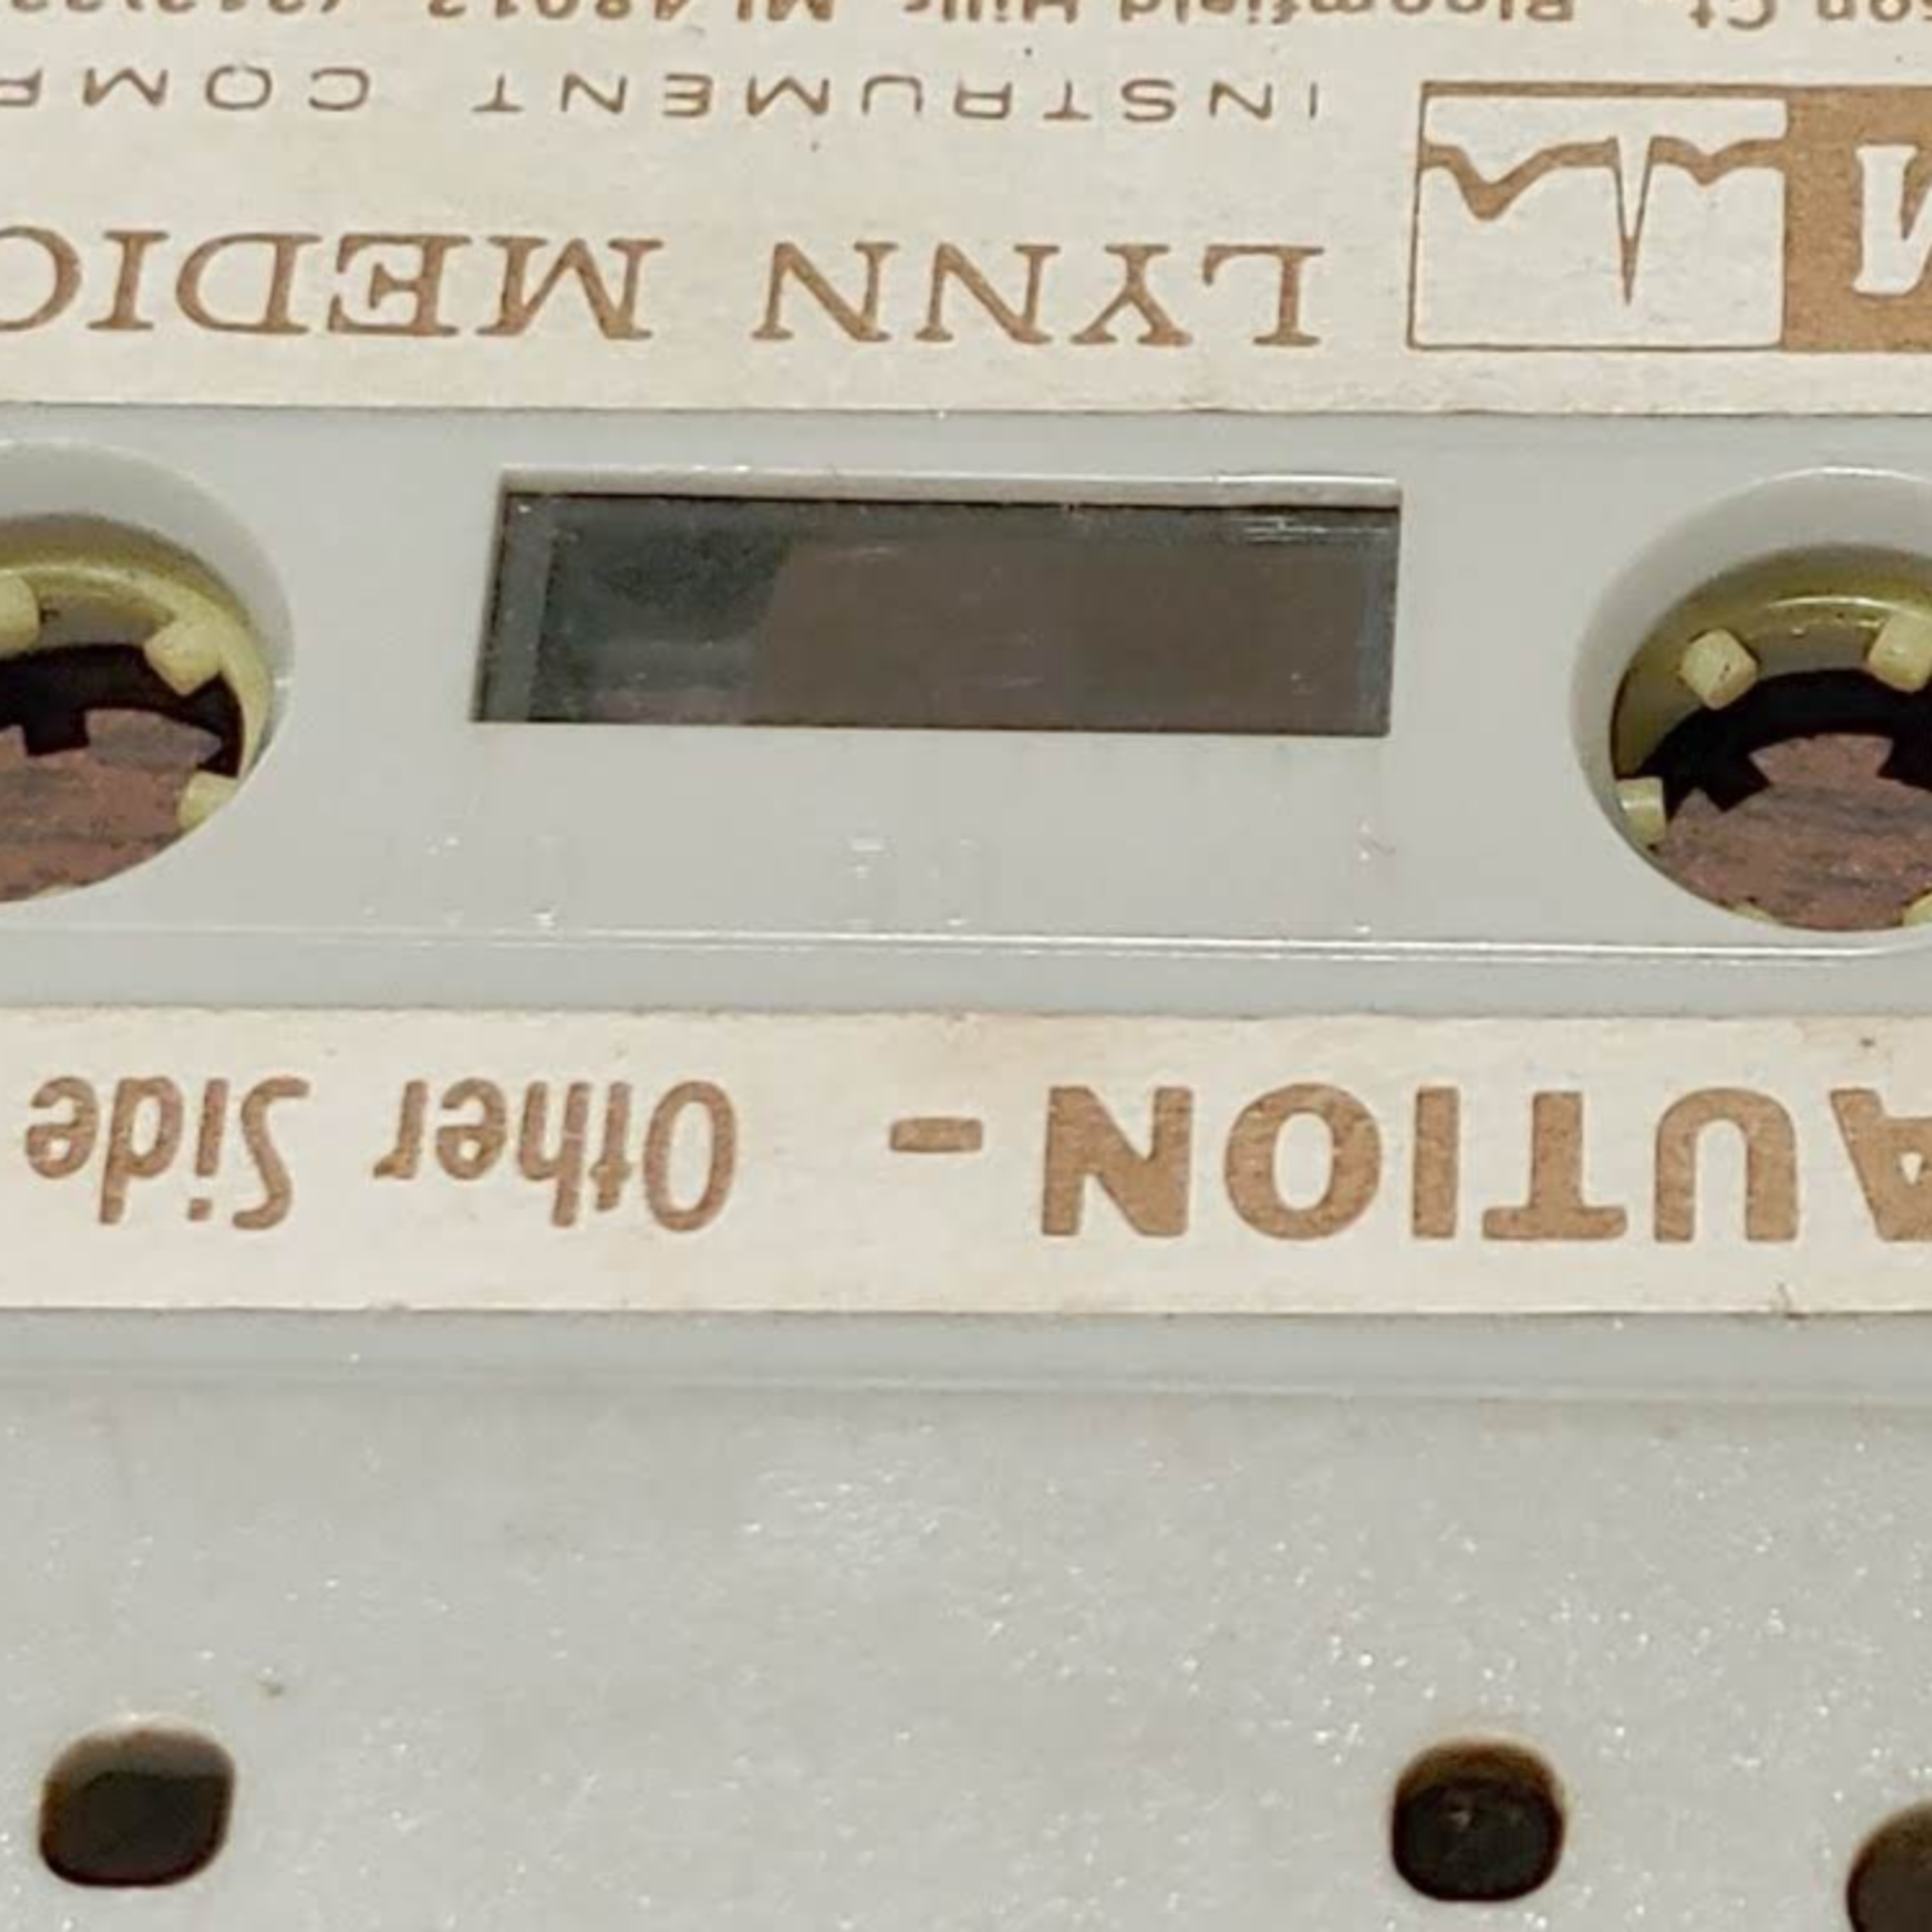 What is on the tape, the first one.